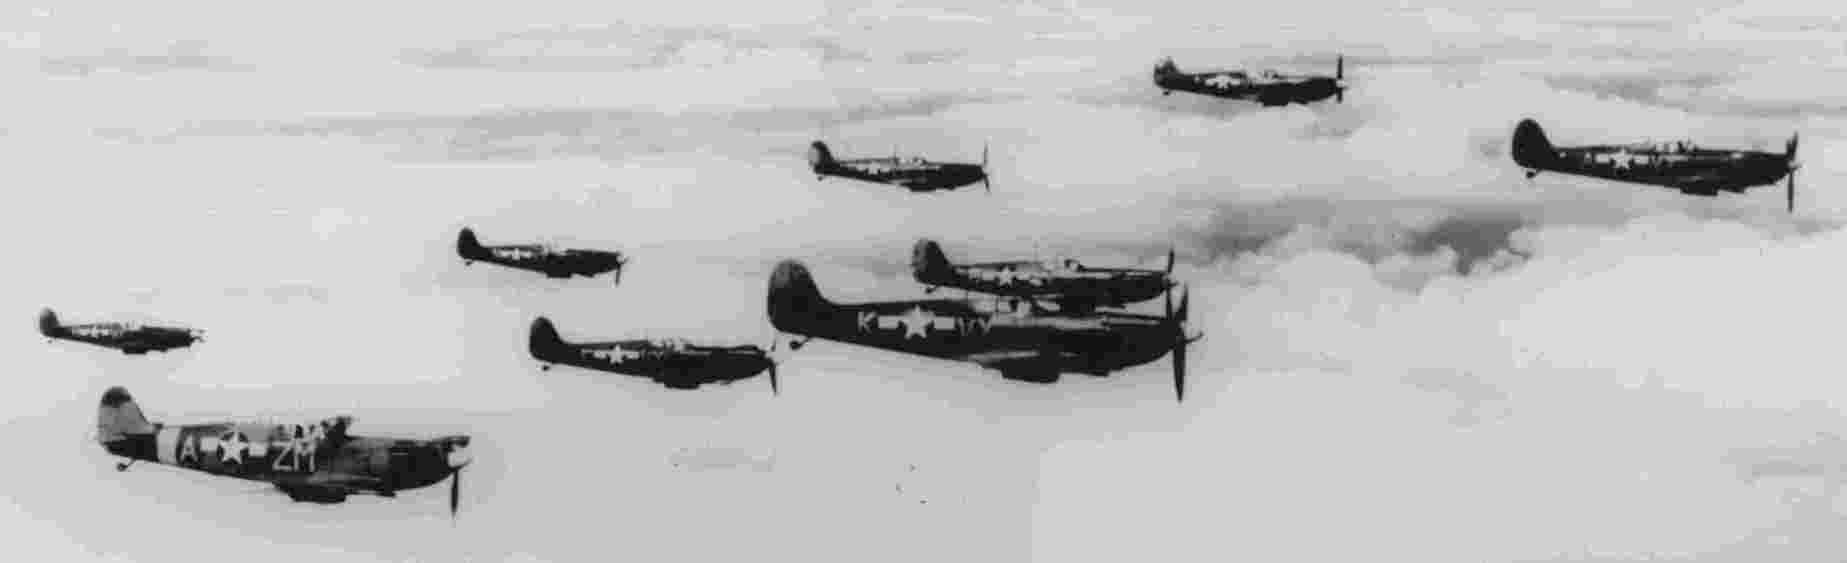 12th Squadron over England.  Haun's plane is lowest left.